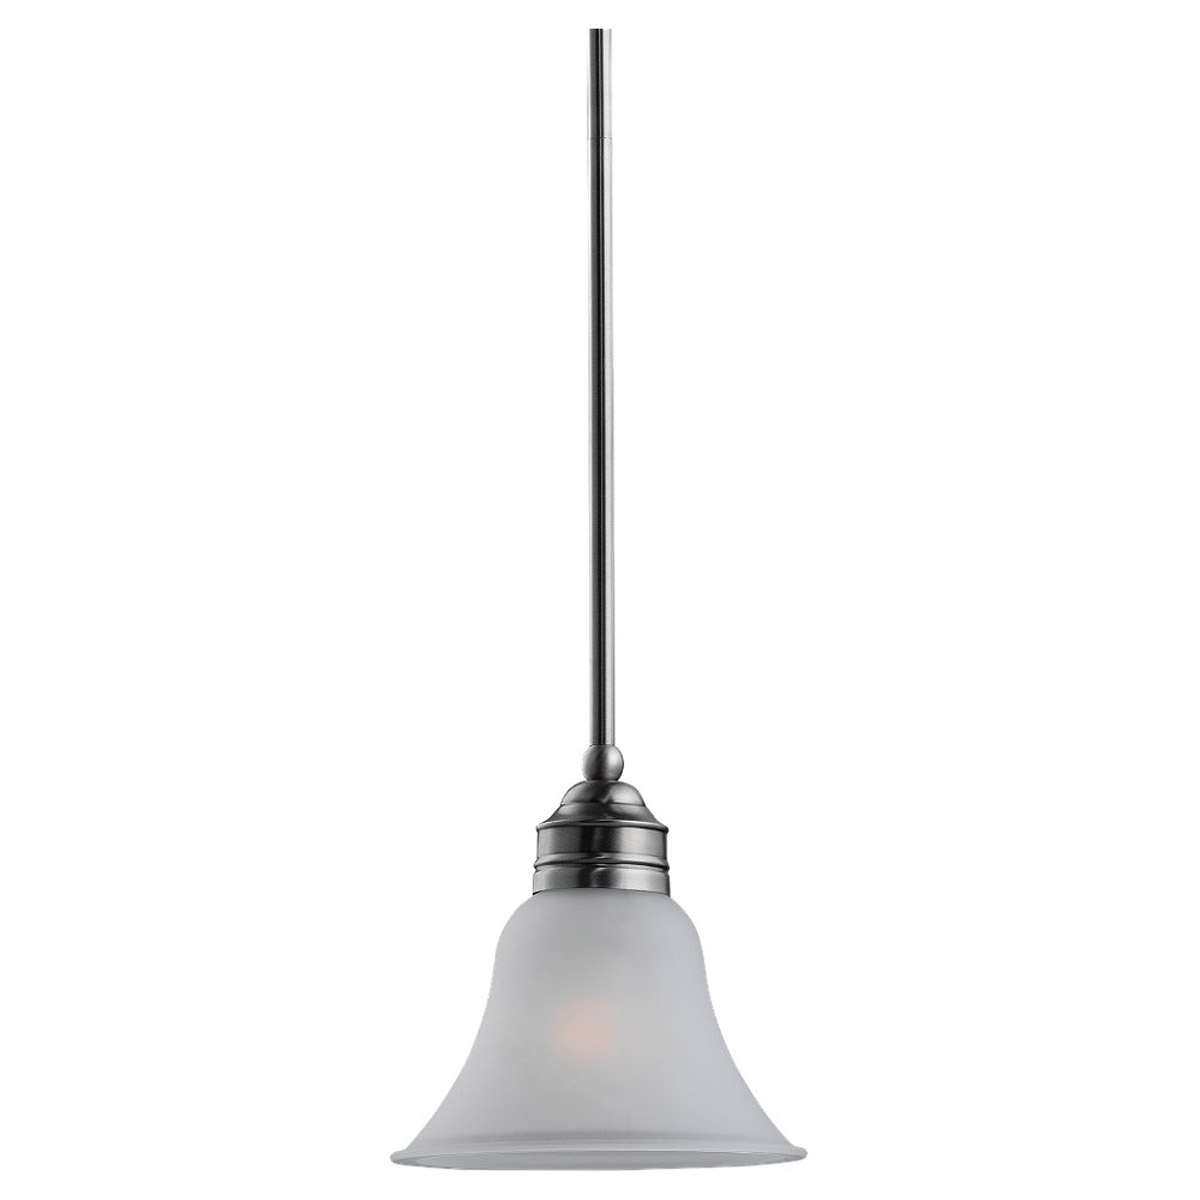 Sea Gull 61850-965 Gladstone 1 Light 8 inch Antique Brushed Nickel Mini Pendant Ceiling Light in Satin Etched Glass, Standard photo